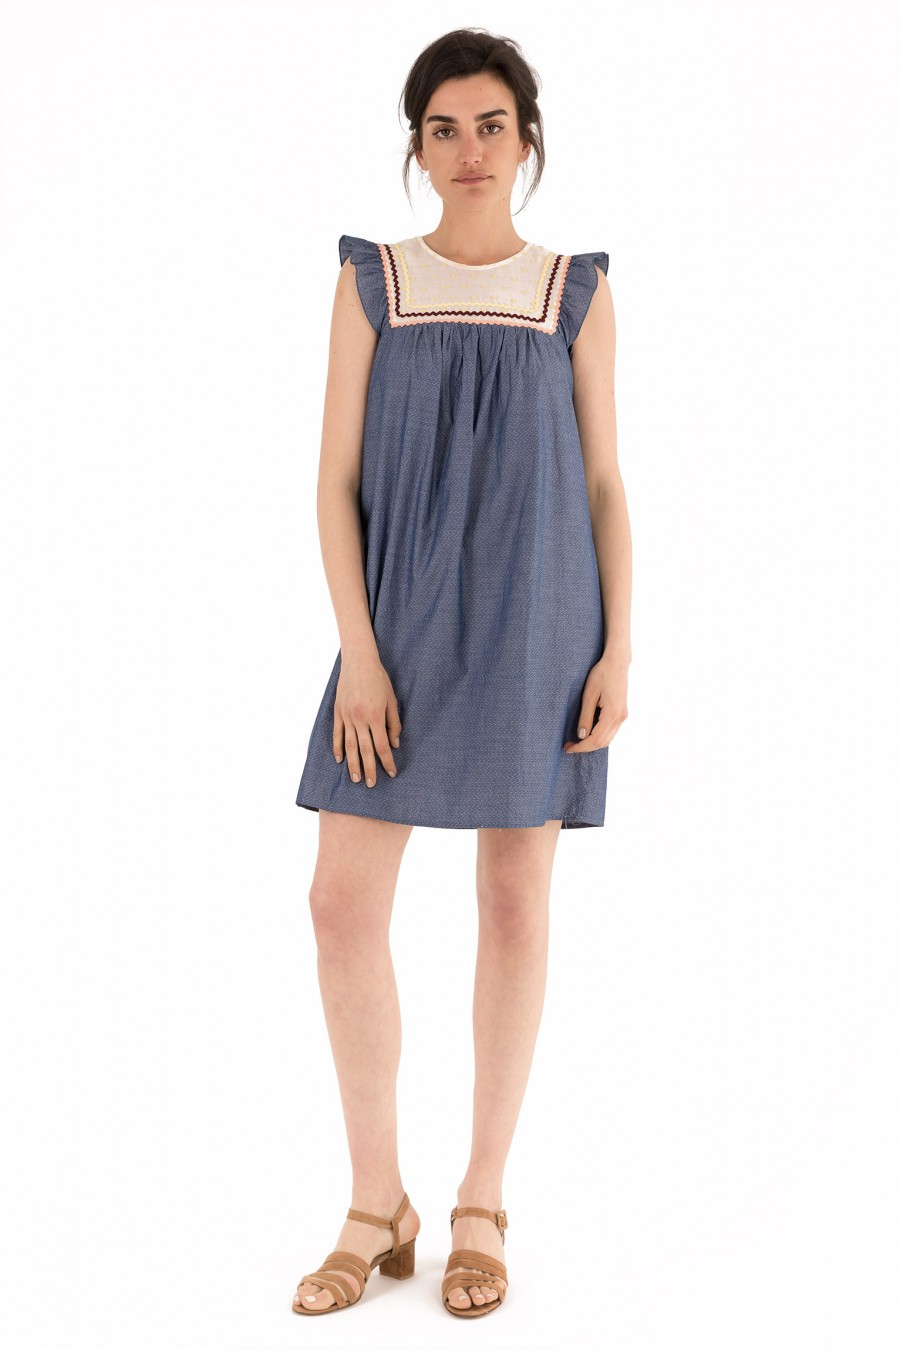 Chambray dress with jacquard microprint